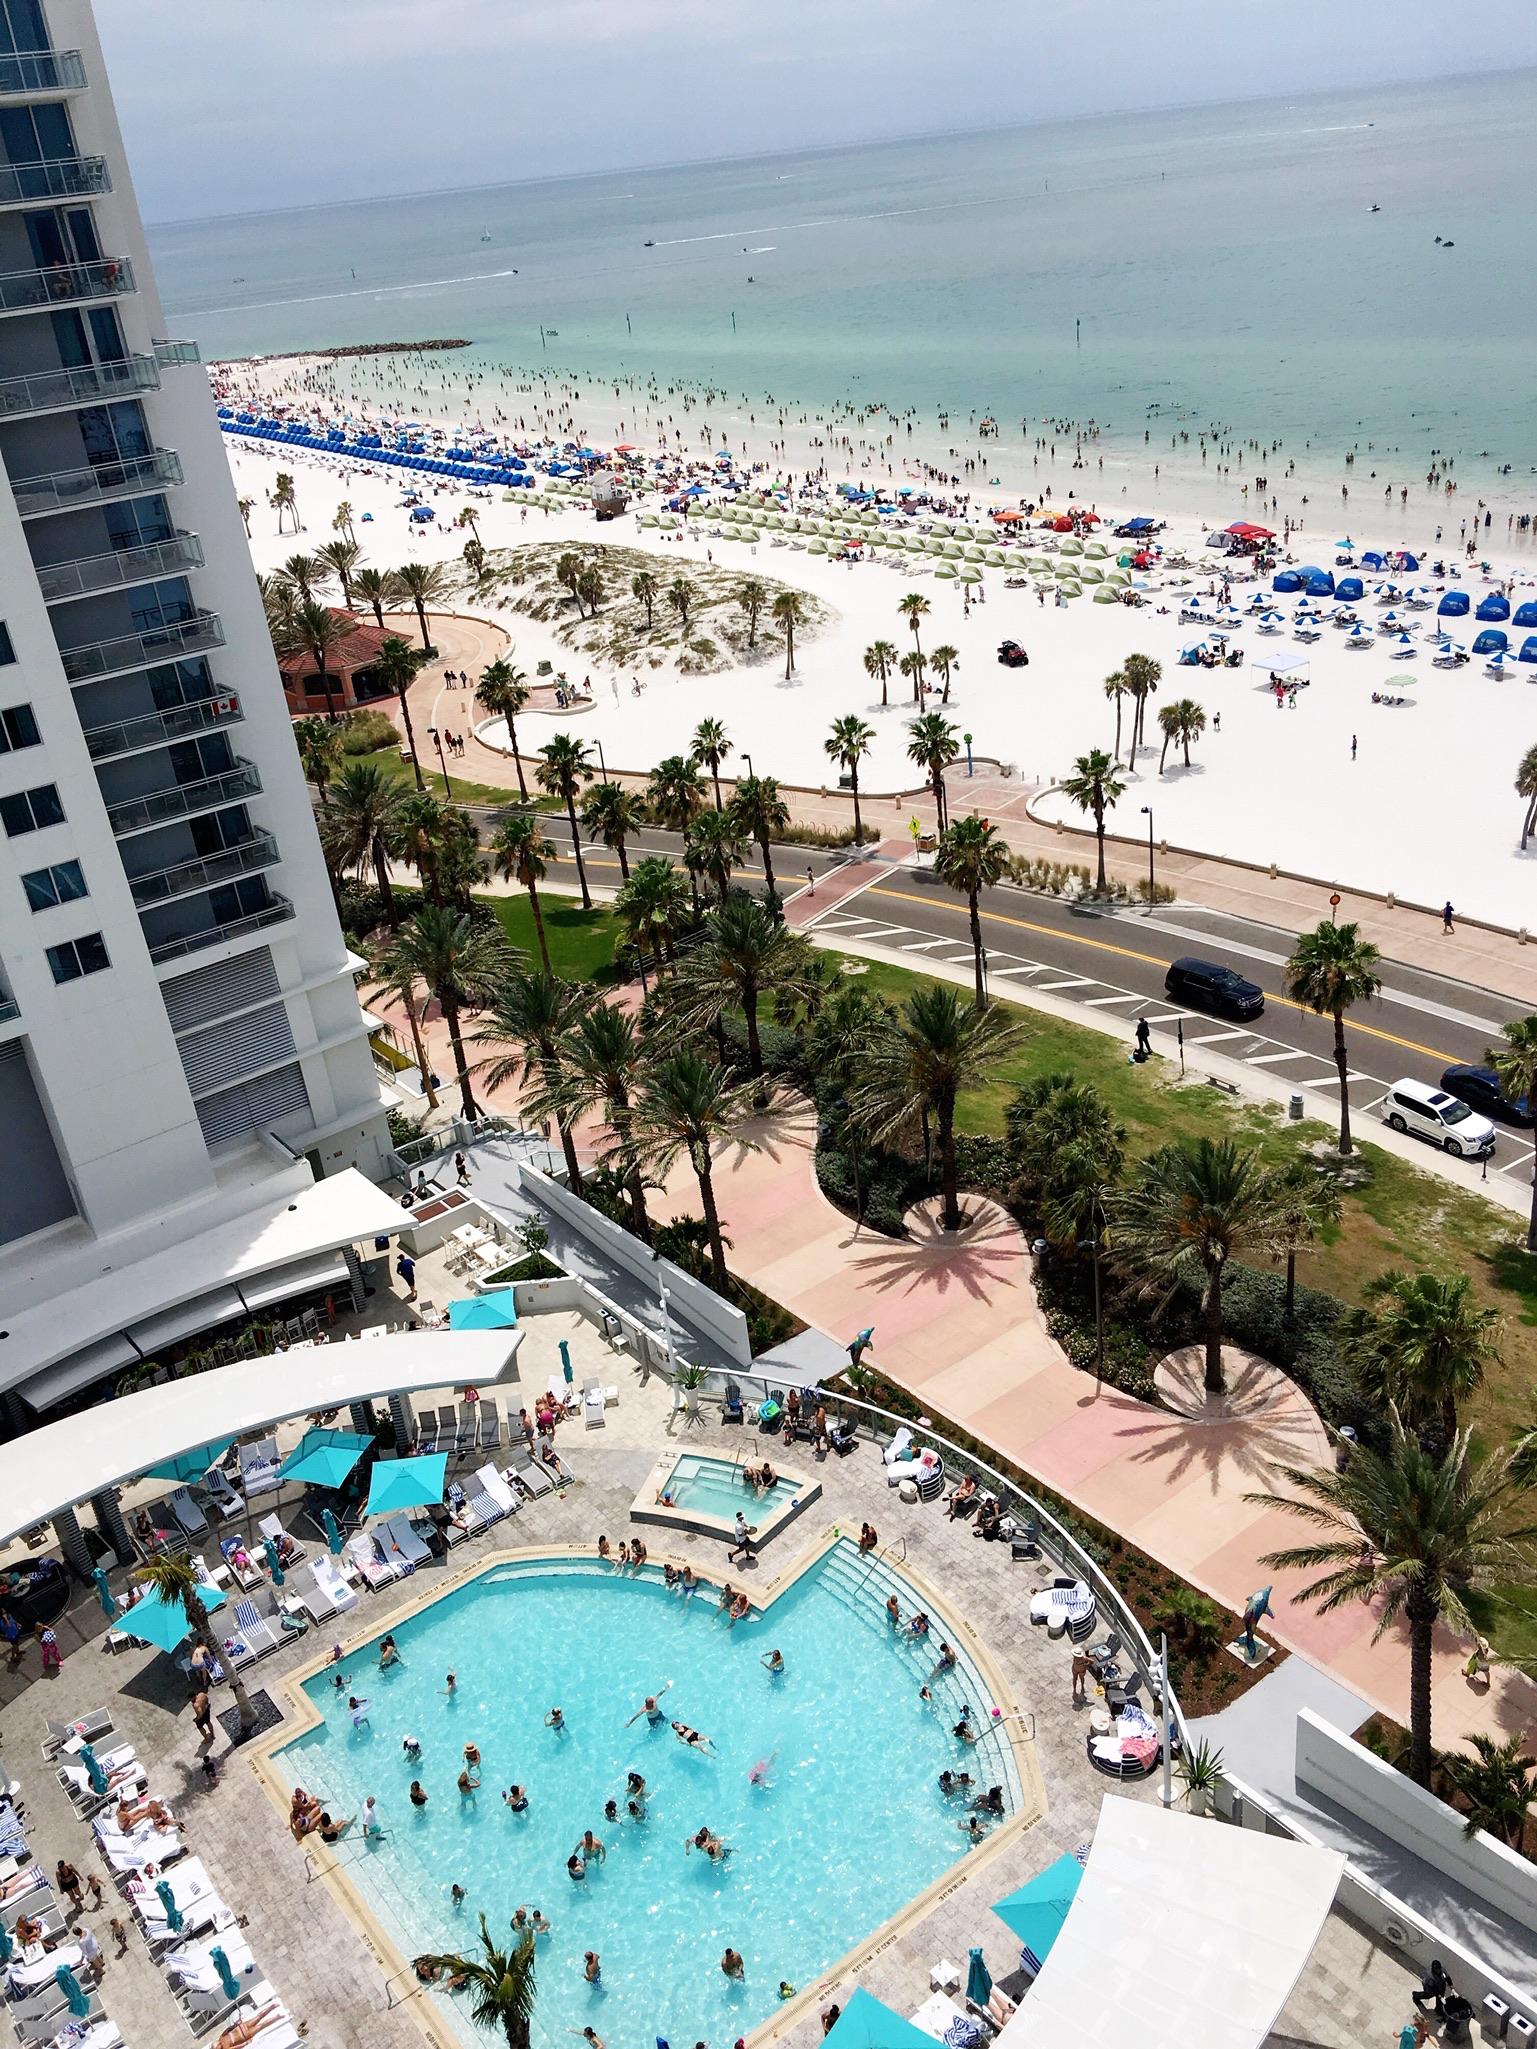 Kids on Vacation Presents: Reconnecting With What Matters- A #GrandReconnect at the Wyndham Grand Clearwater Beach